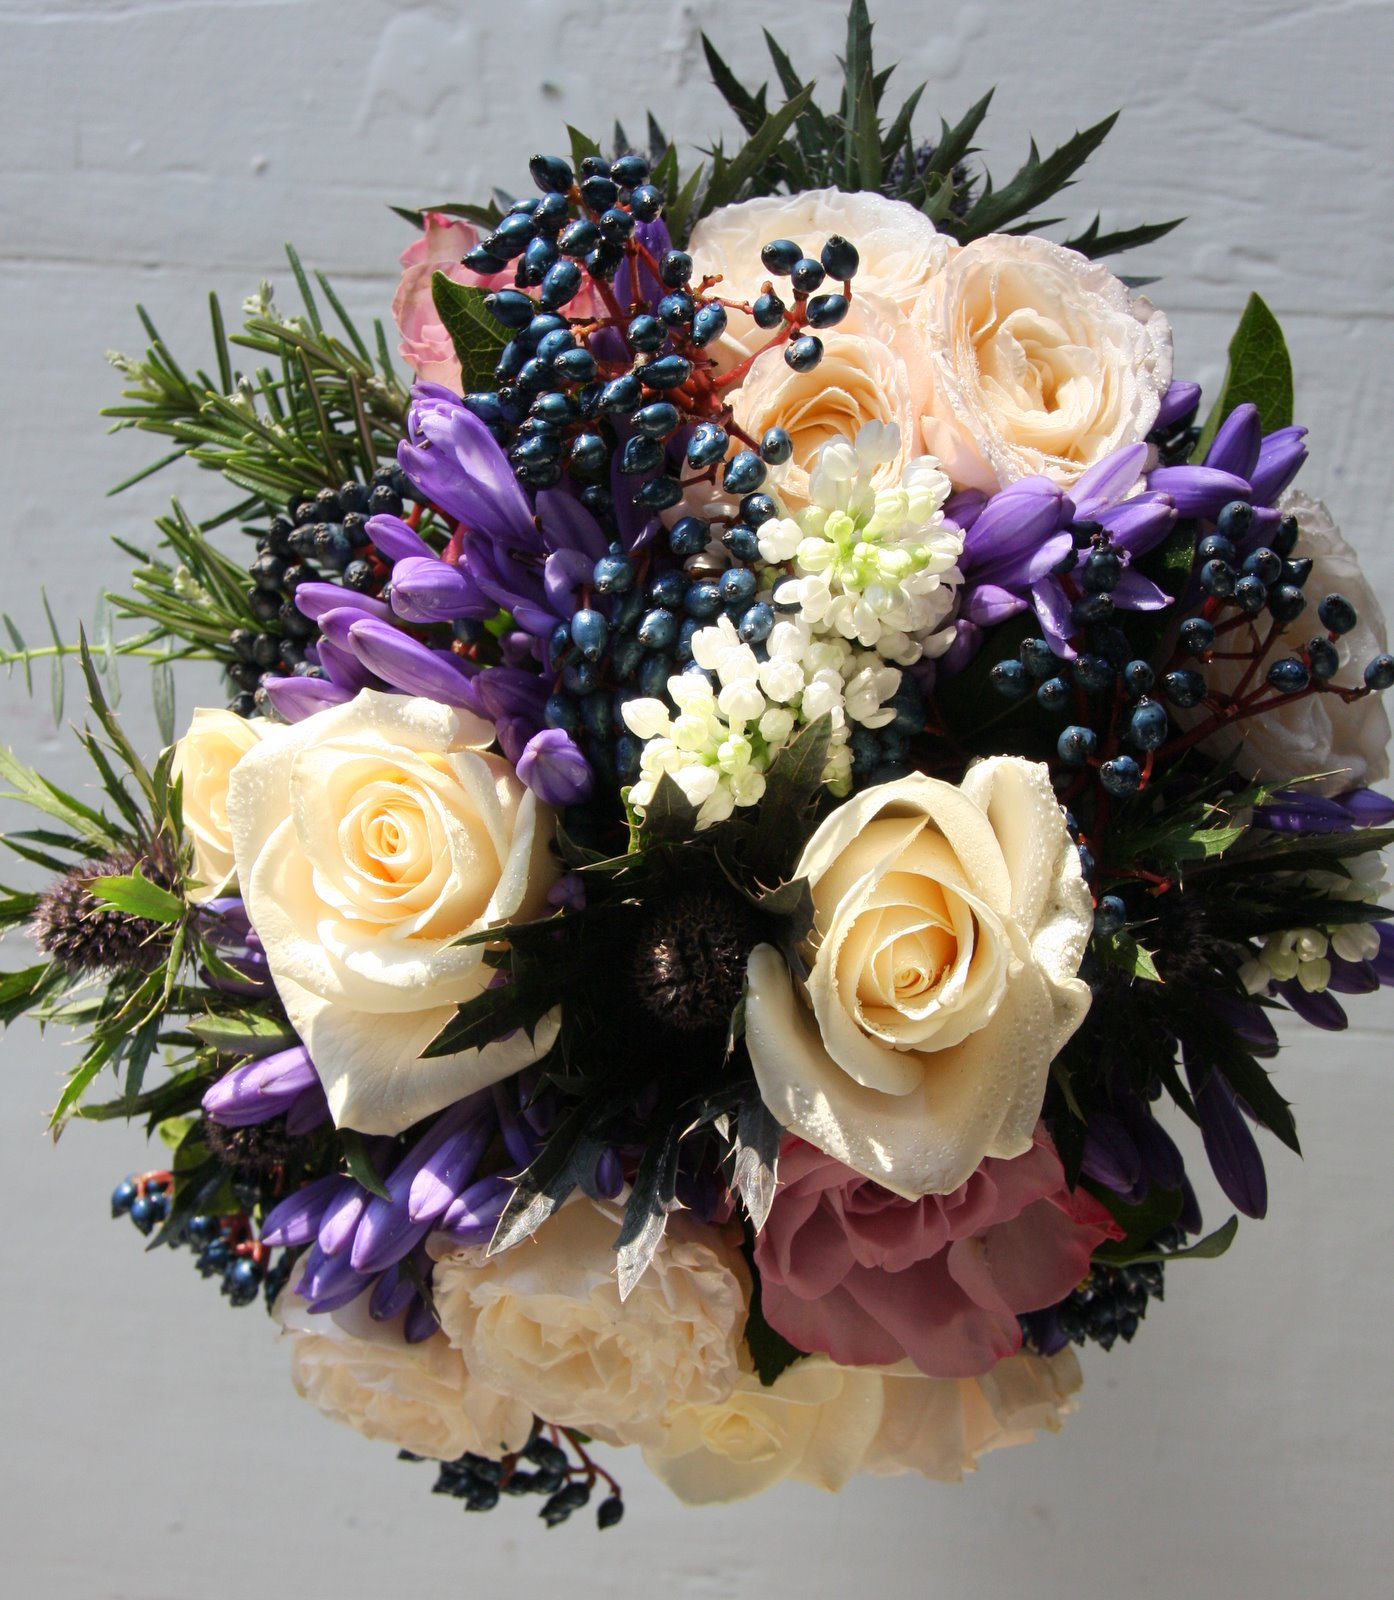 Wedding Flowers Lancashire: The Flower Magician: Winter Wedding Bouquet To Tone With Blue